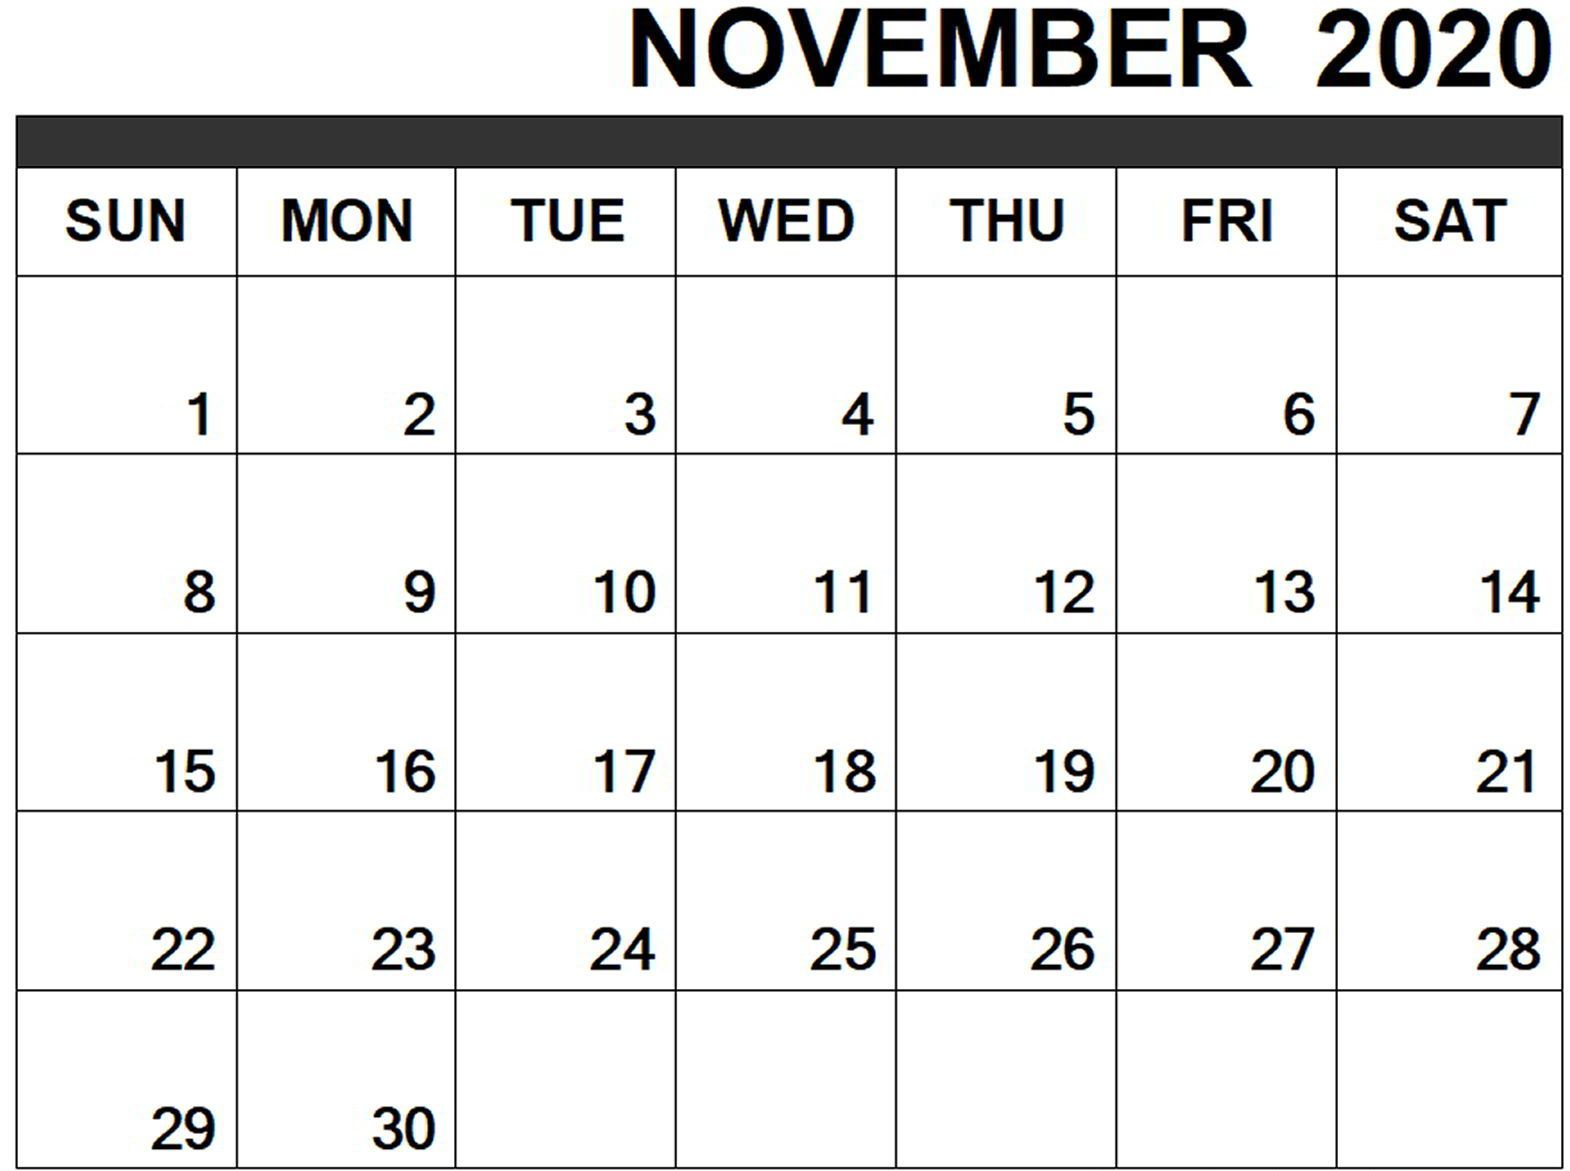 November Calendar 2020 Blank Template Calendar Word Yearly